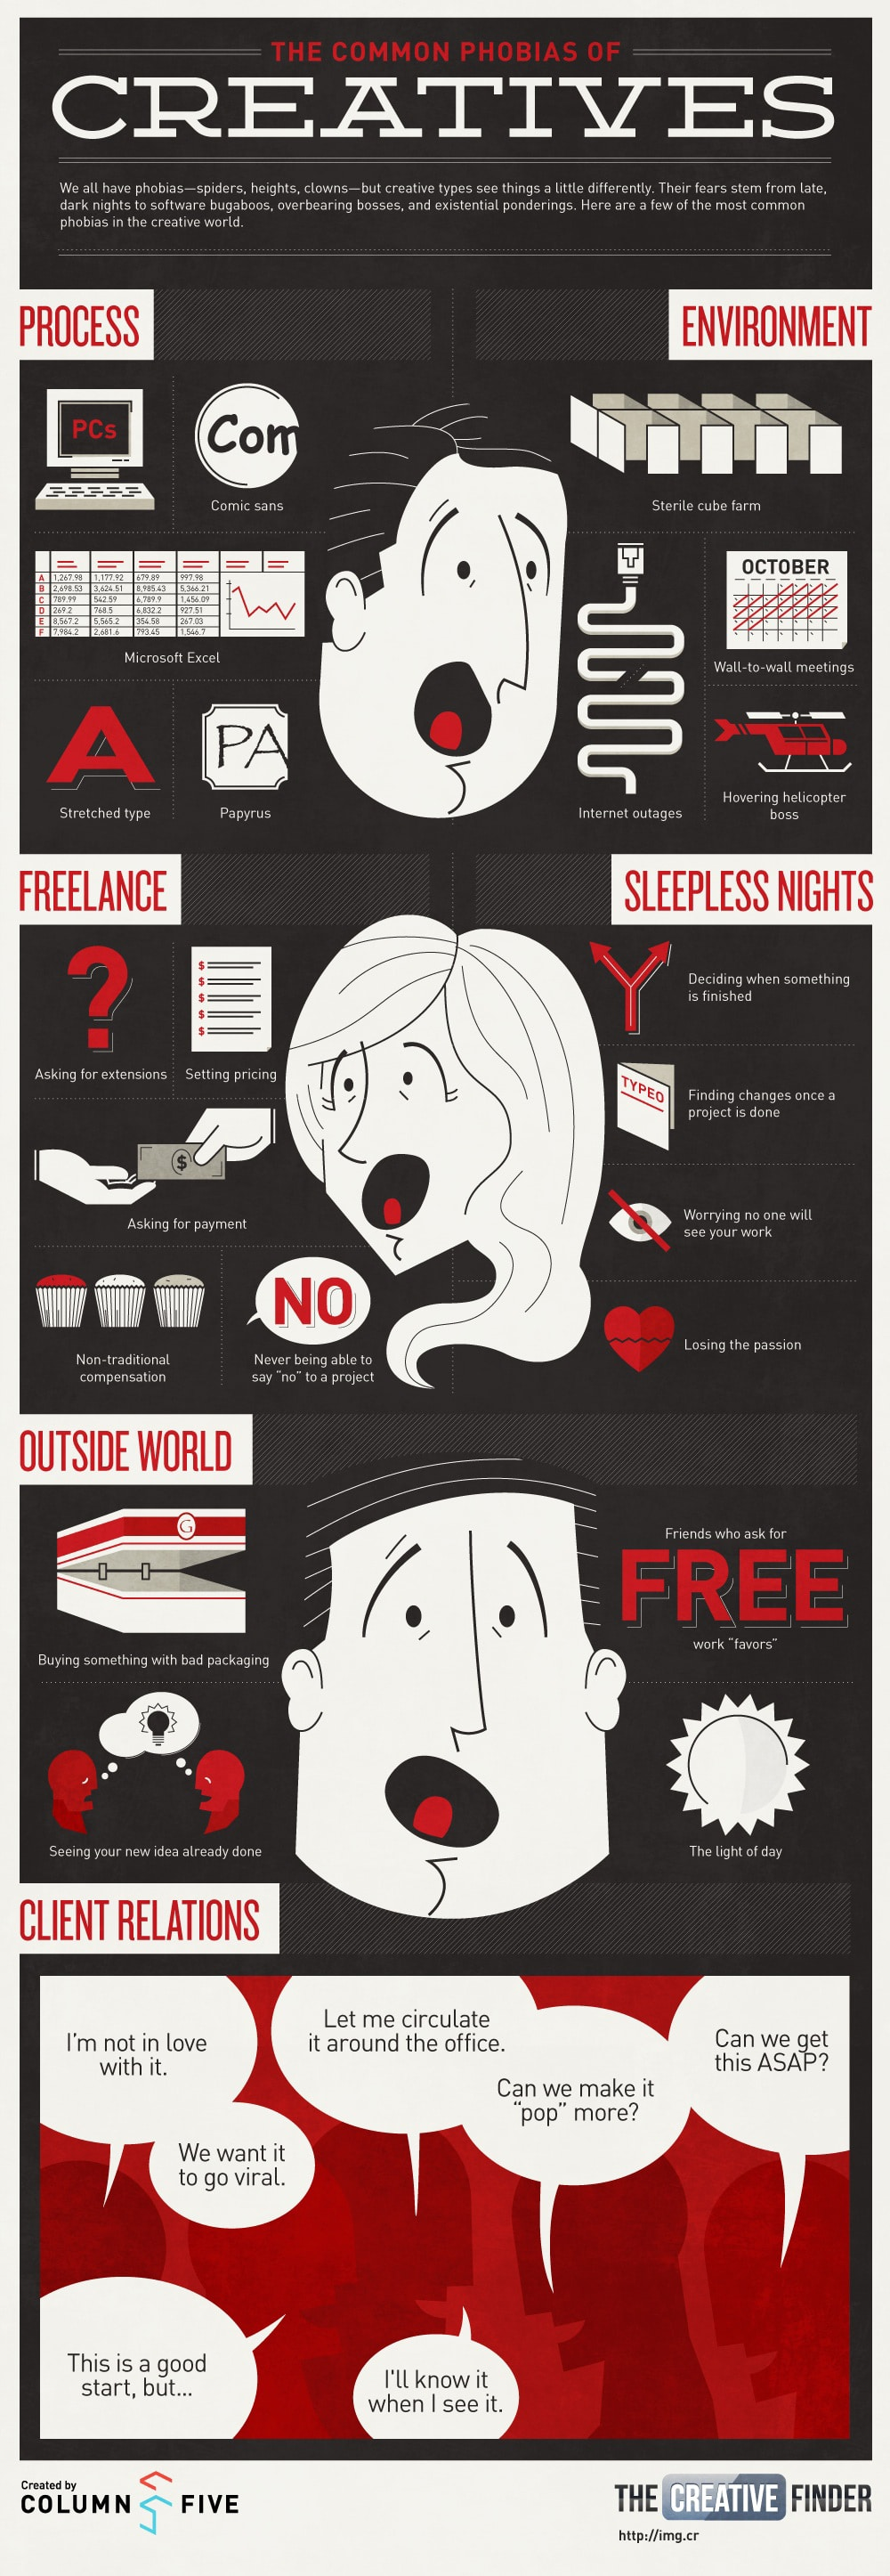 phobias-of-creative-people-infographic